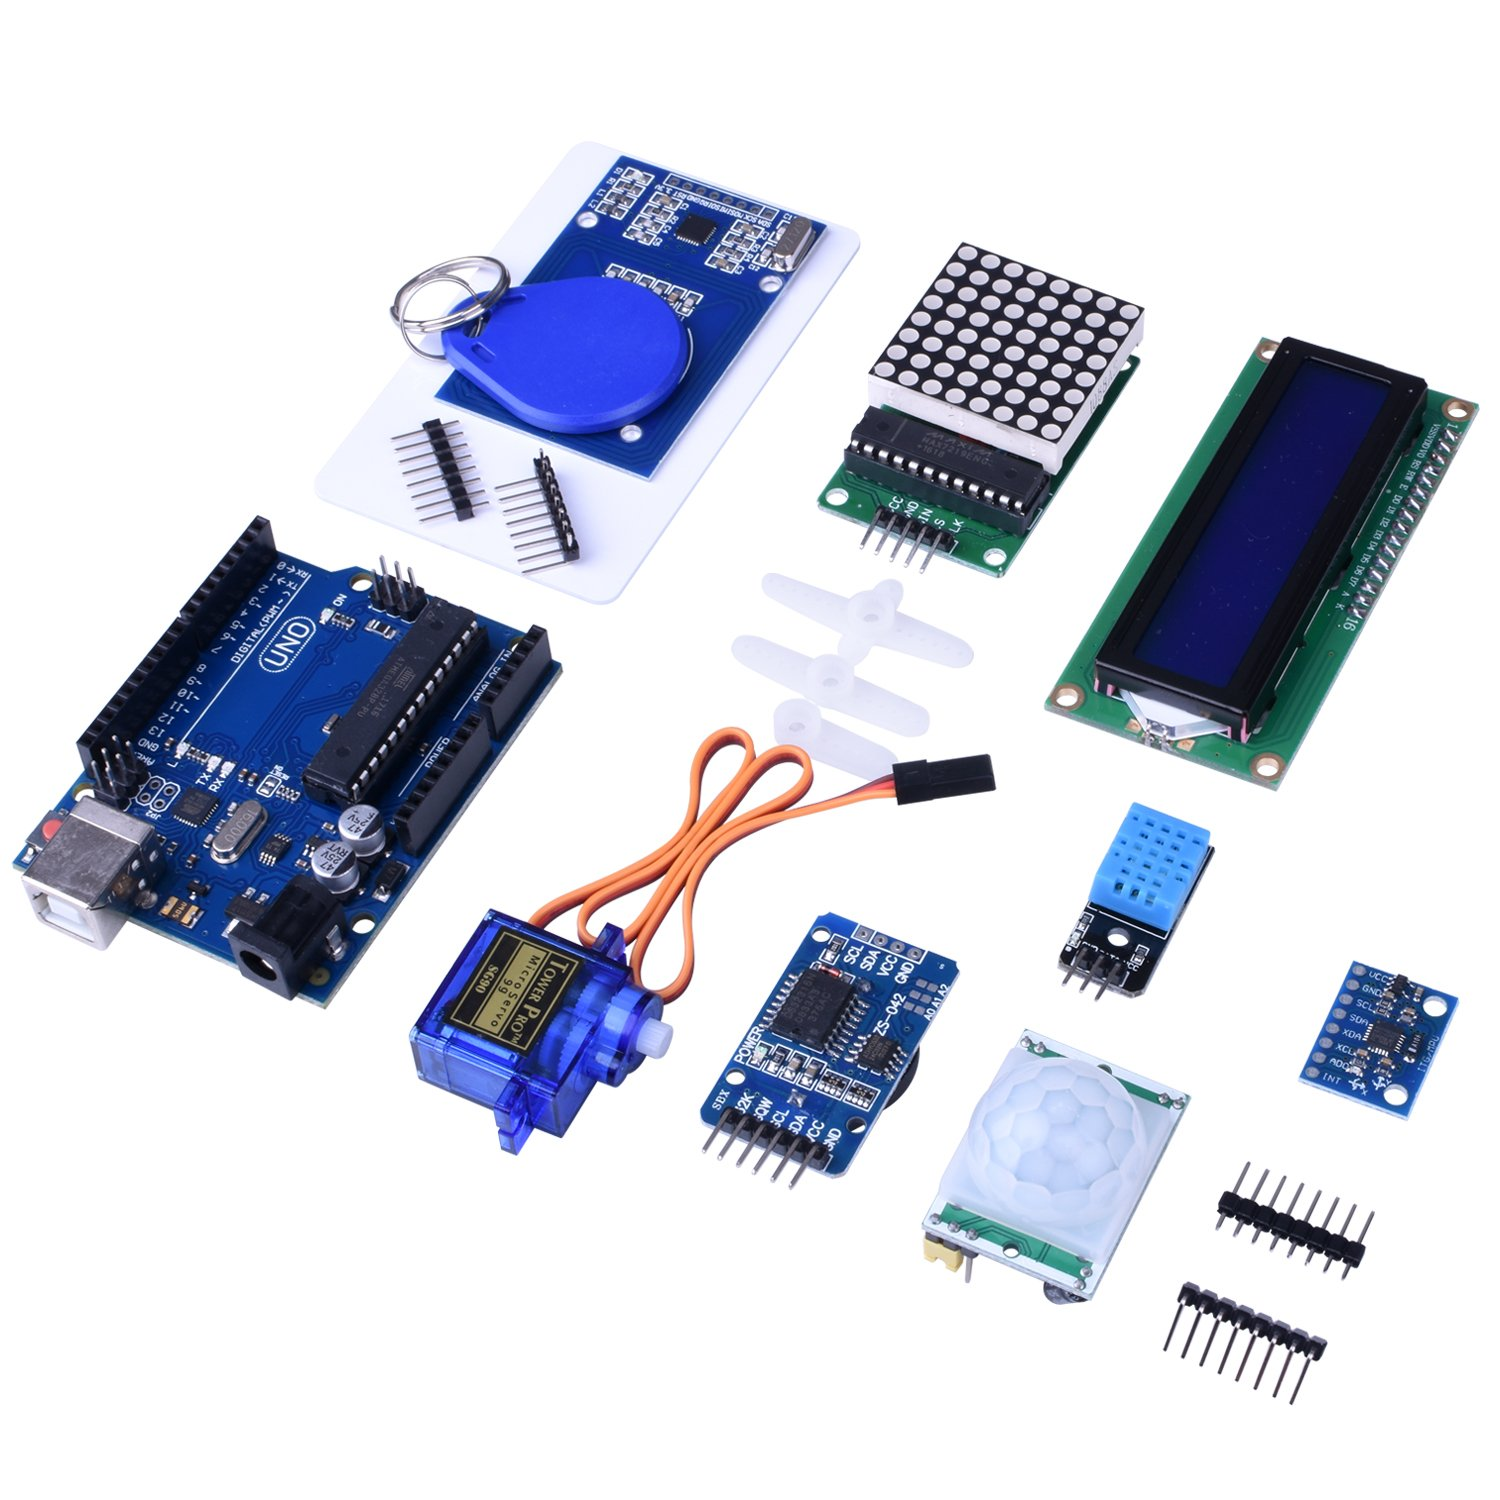 Quimat Project Complete Starter Kit For Arduino Uno R3 Mega 2560 Tutorial Lesson 3 Breadboards And Leds Robot Nano Breadboard Kits With Tutorials